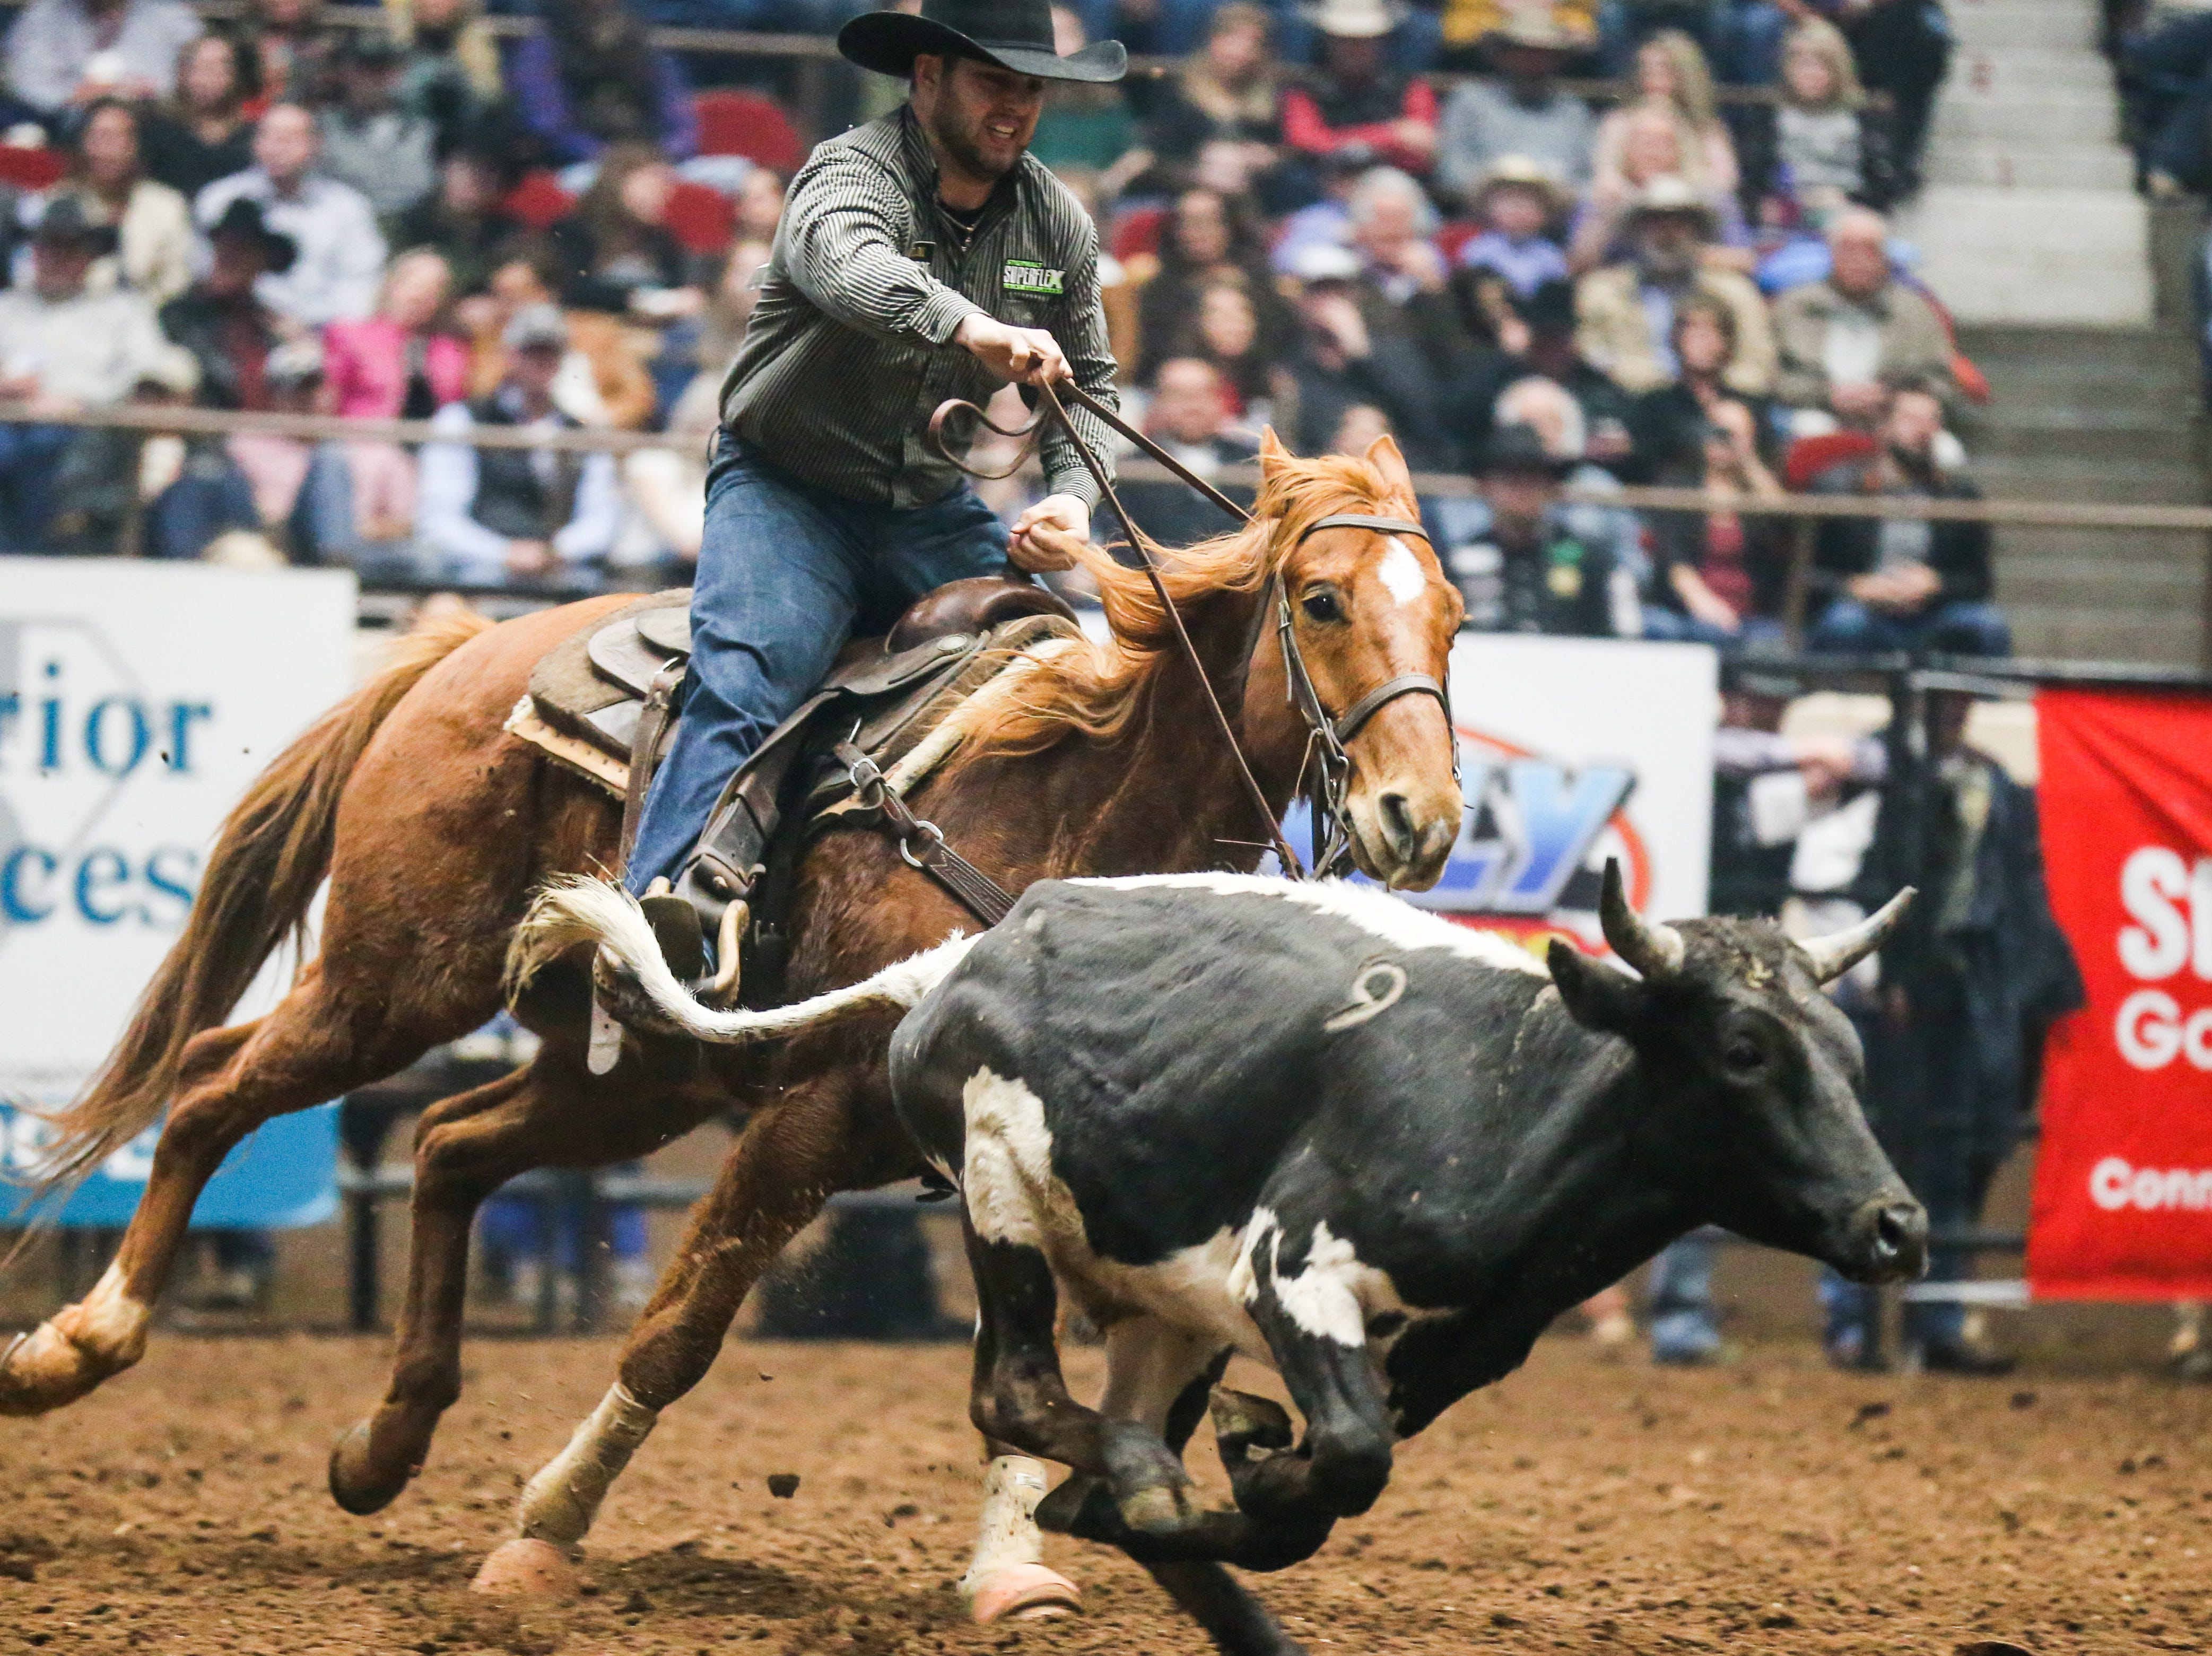 Denver Berry rides out to catch a steer to wrestle during the 3rd performance of the San Angelo Stock Show & Rodeo Saturday, Feb. 2, 2019, at Foster Communications Coliseum.